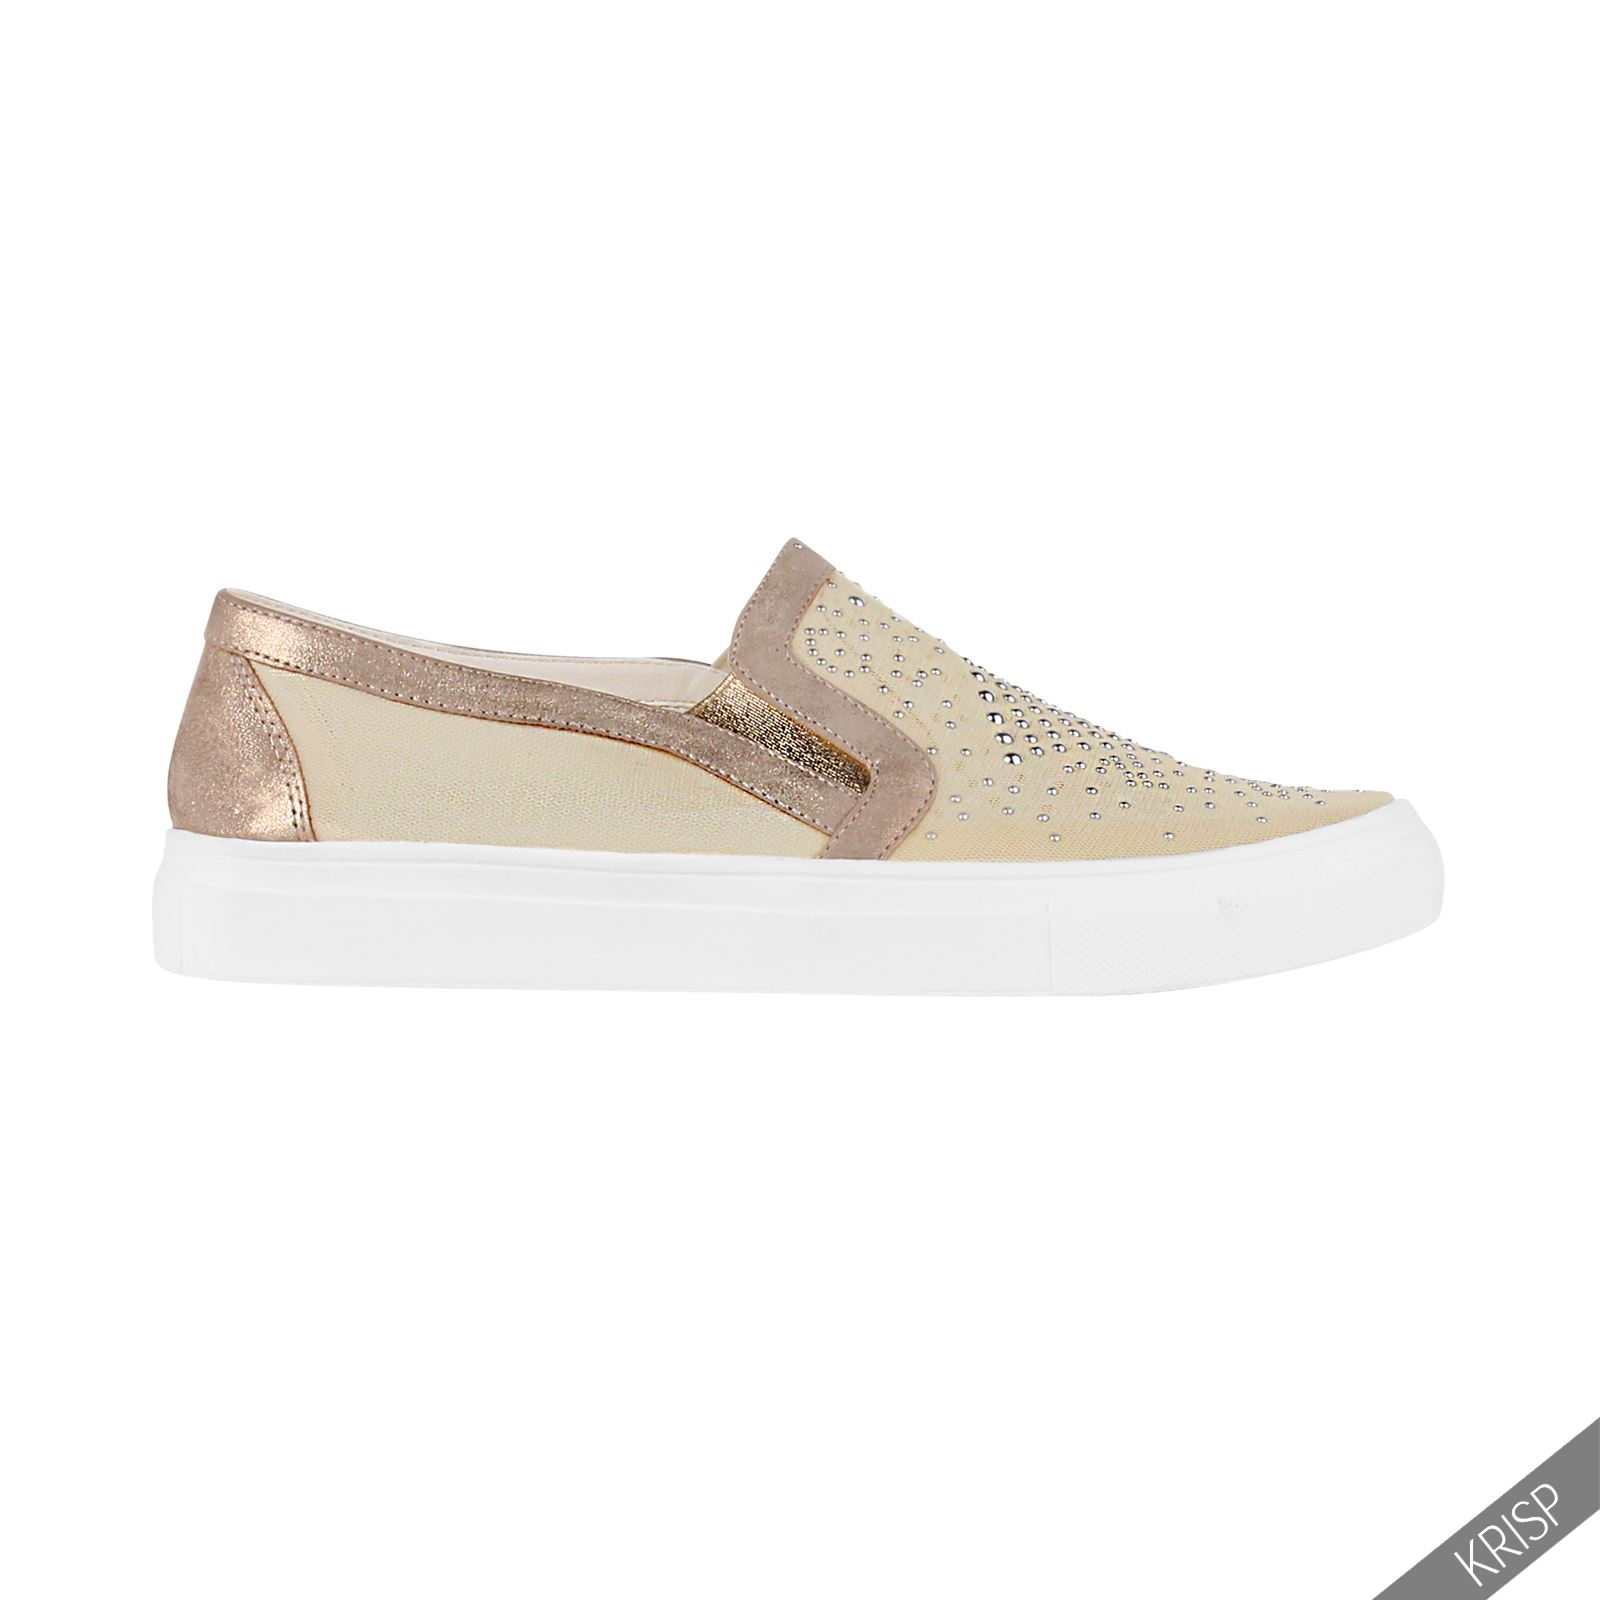 Women's Trainers Trainers, Sneakers 30